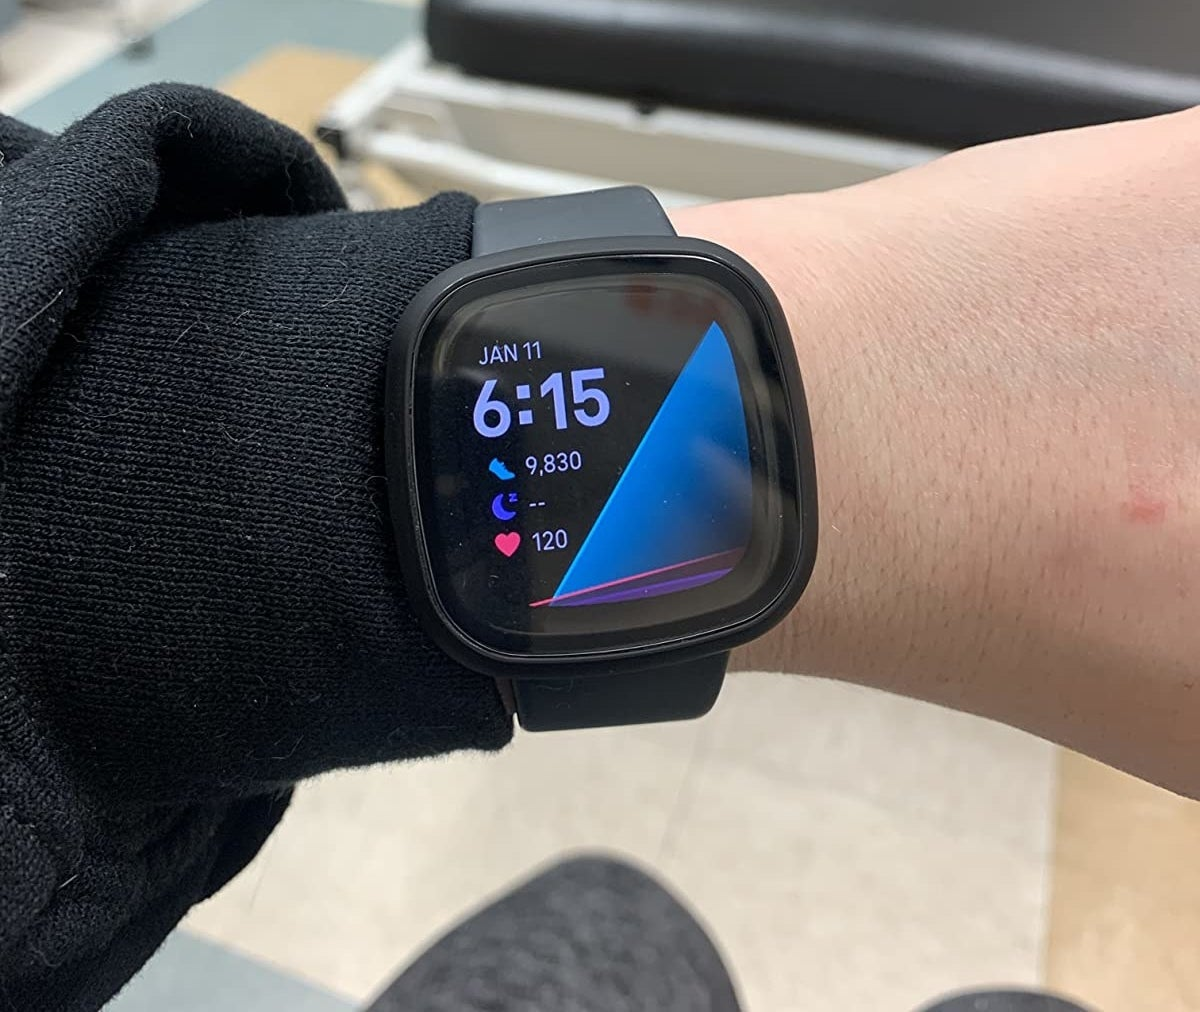 Reviewer wearing the black watch